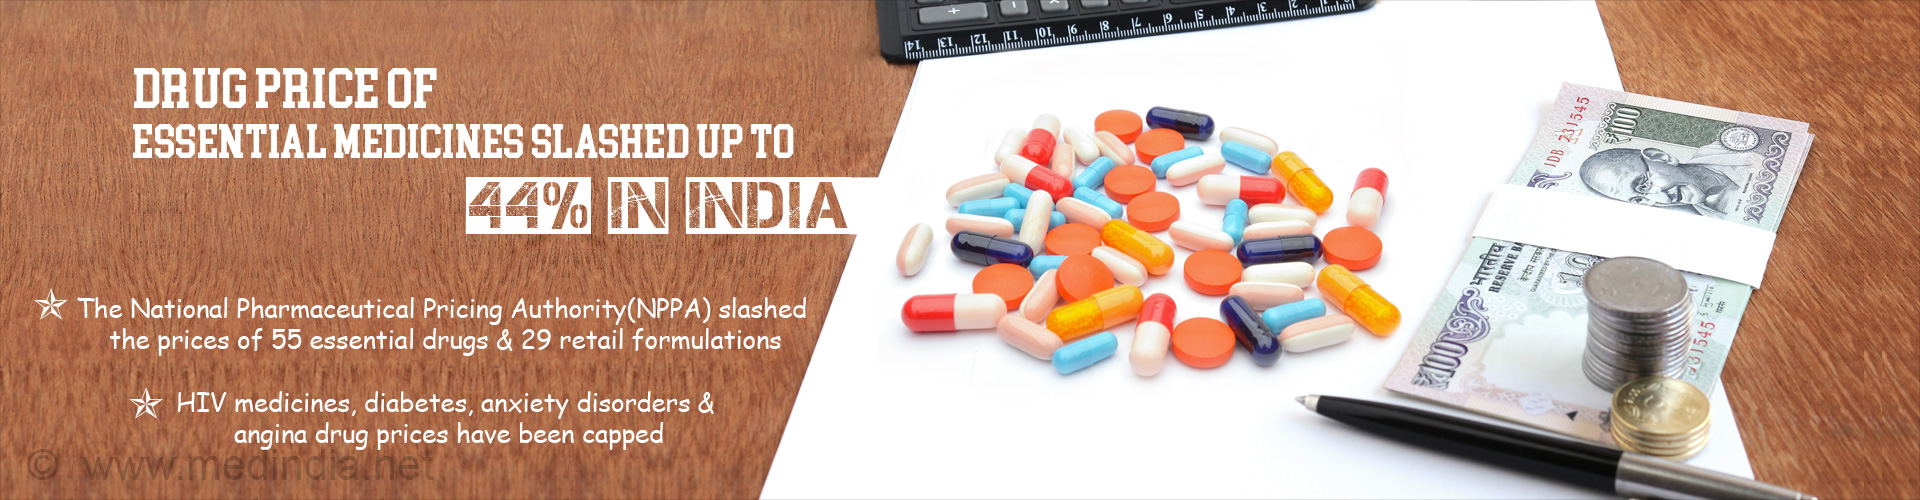 Essential Drugs Price Slashed By Up To 44% in India